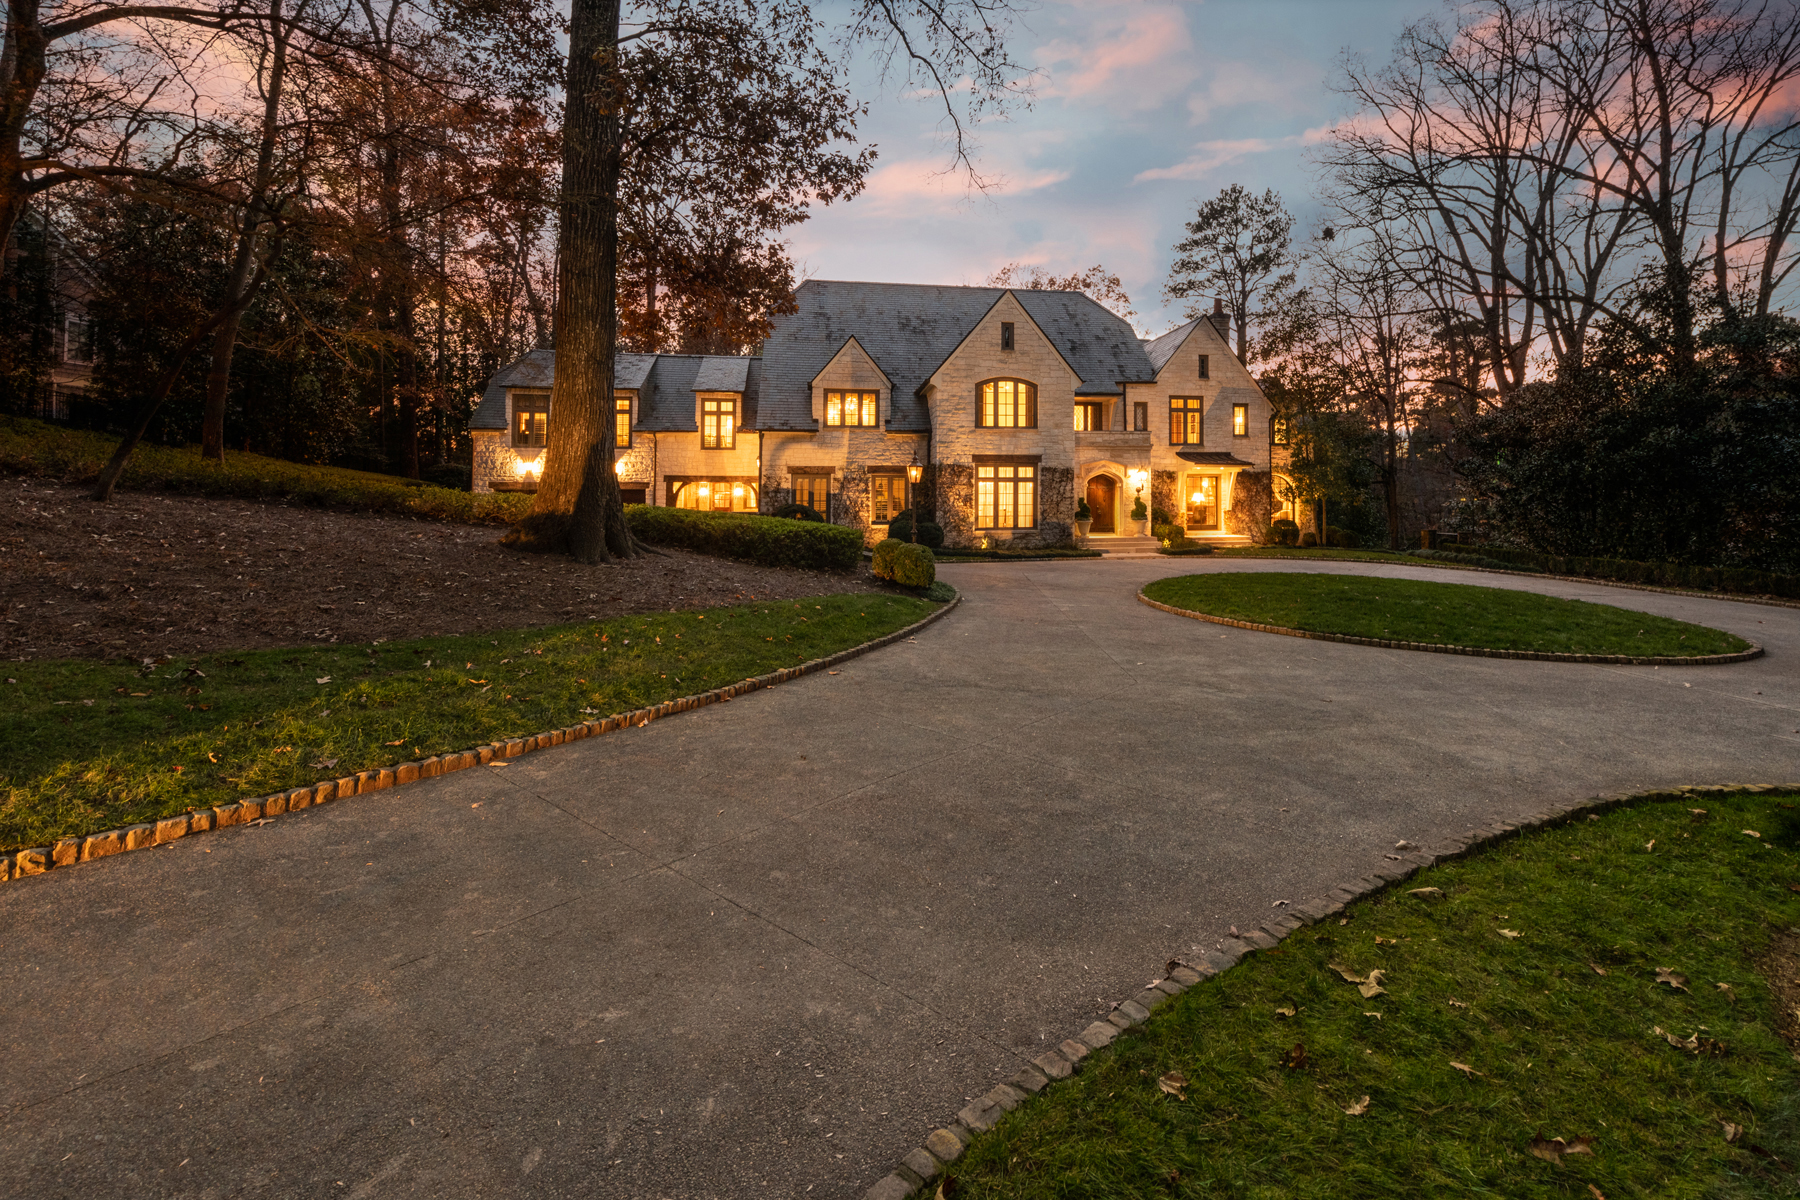 Single Family Homes for Sale at Stunning Gated Estate Property 3200 Ridgewood Road NW, Atlanta, Georgia 30327 United States